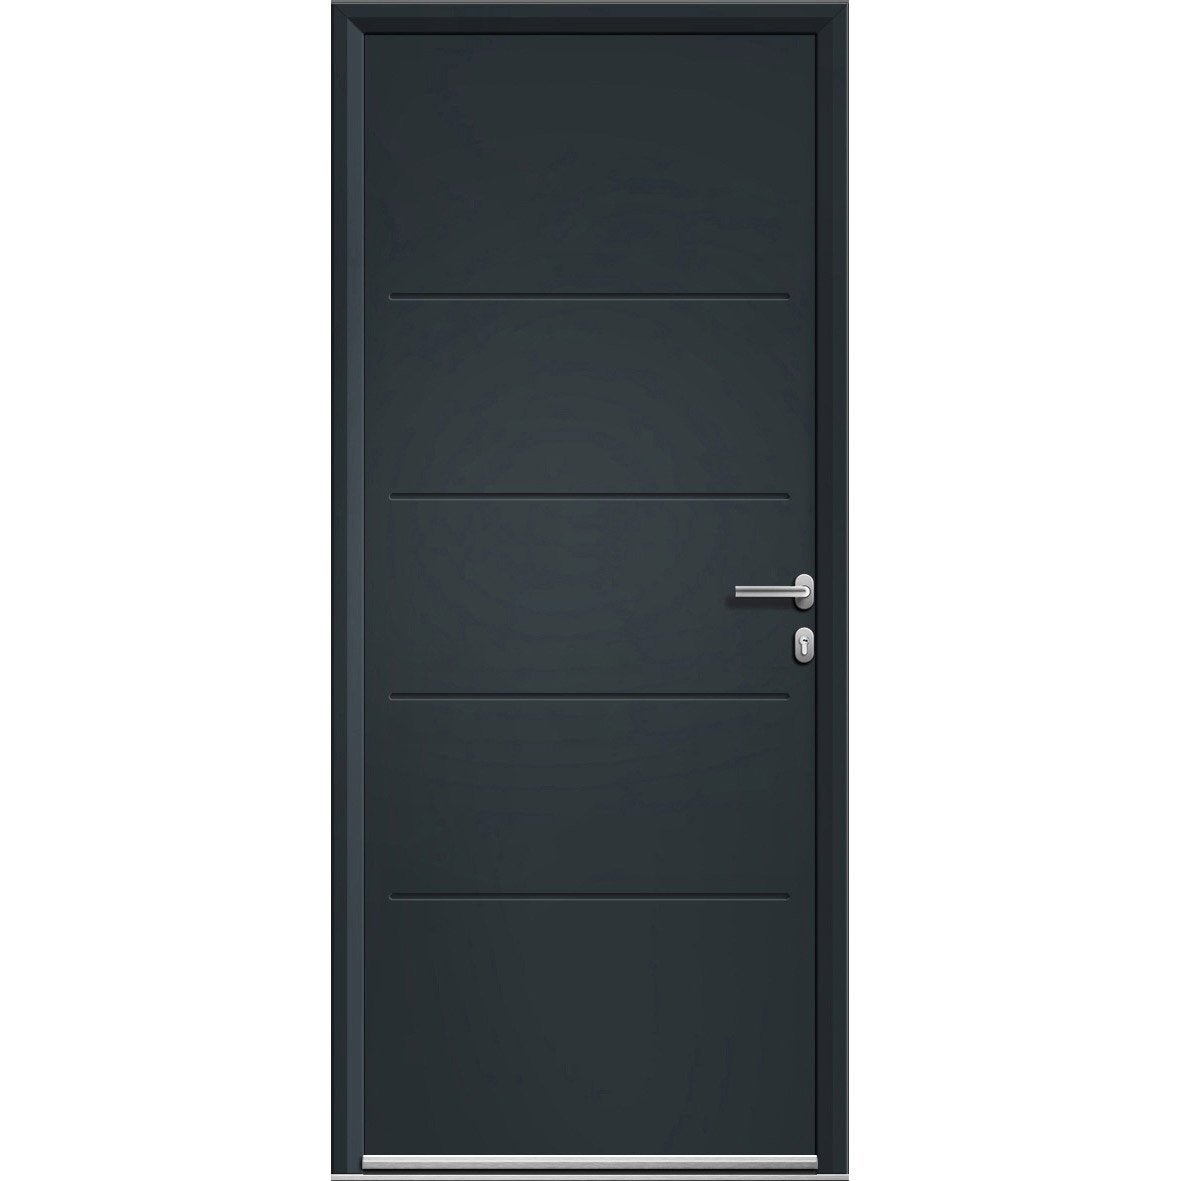 Porte d 39 entr e pour maison leroy merlin for Porte 3 points leroy merlin